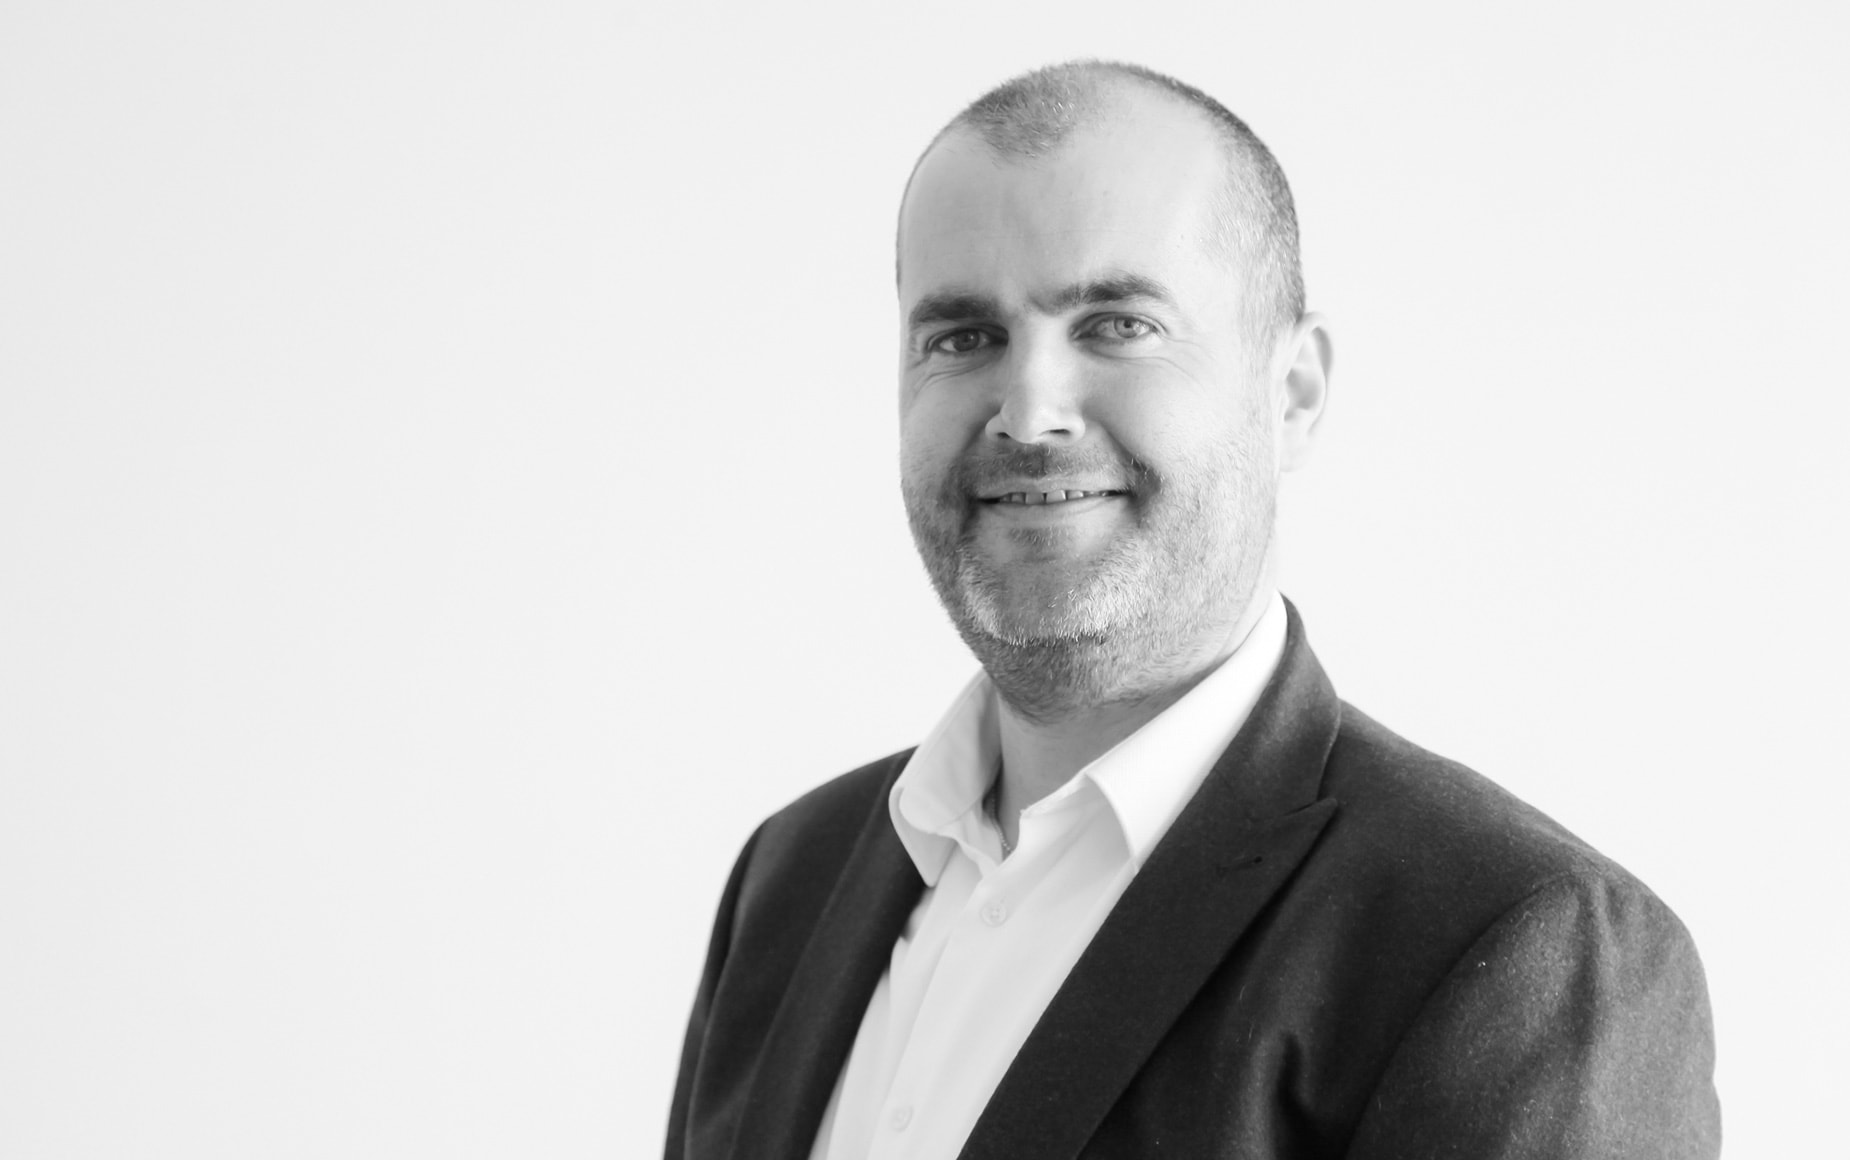 Dominic Keegans - Survey Manager